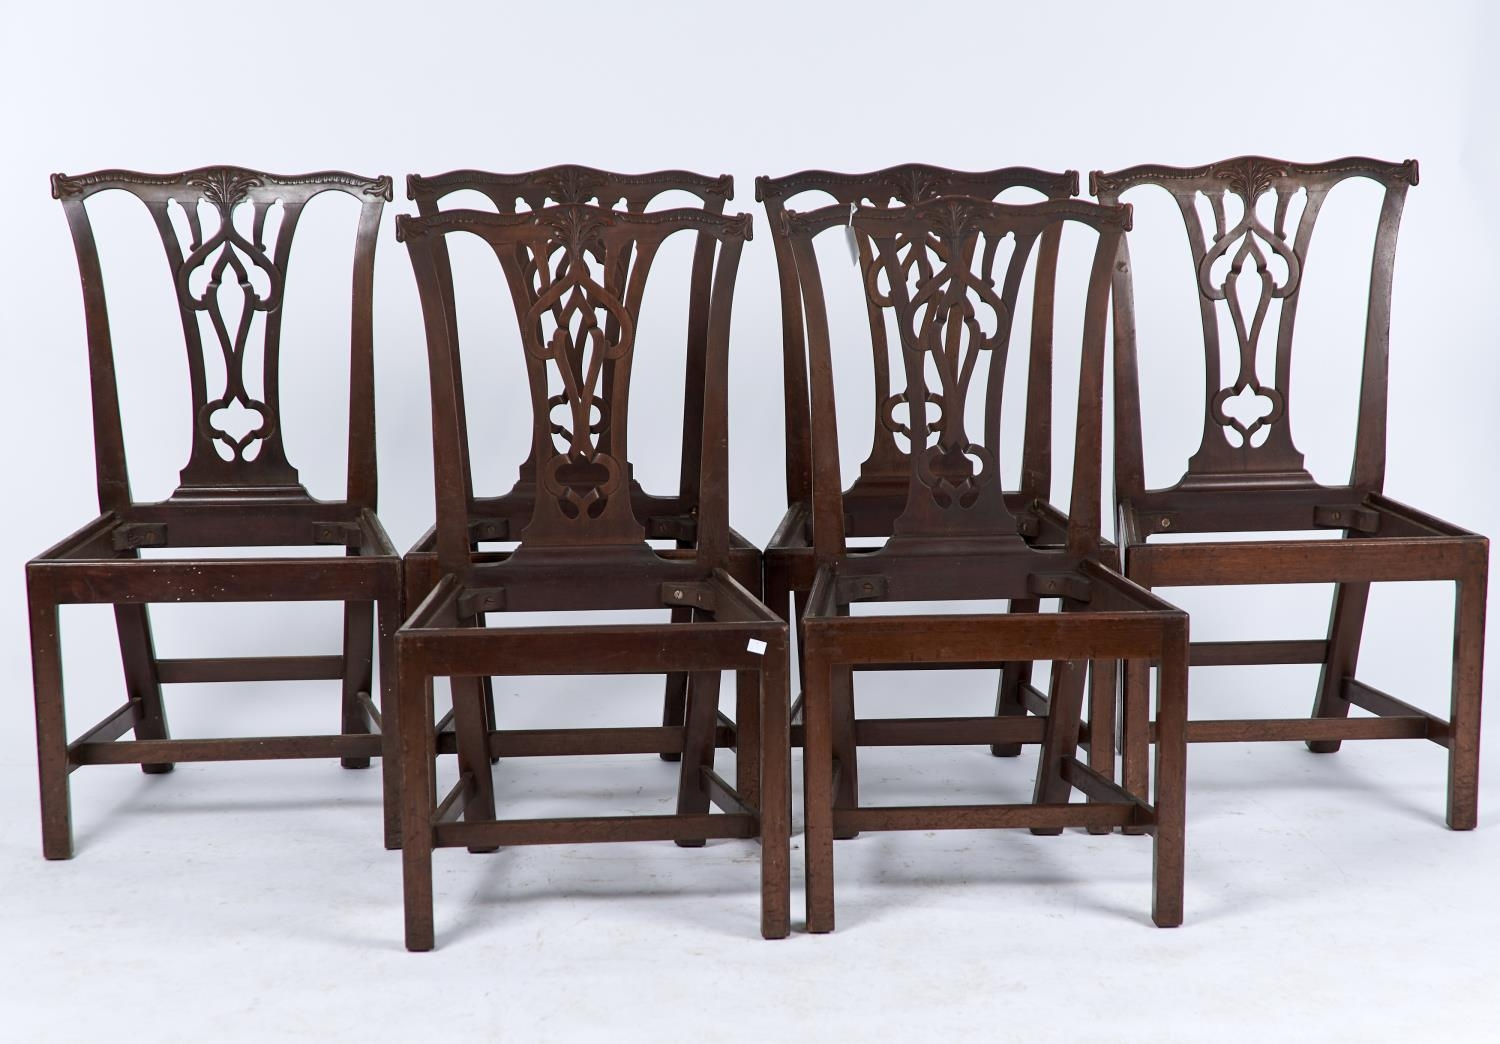 A set of six mahogany dining chairs, c1880, in George II style, foliate carved serpentine cresting